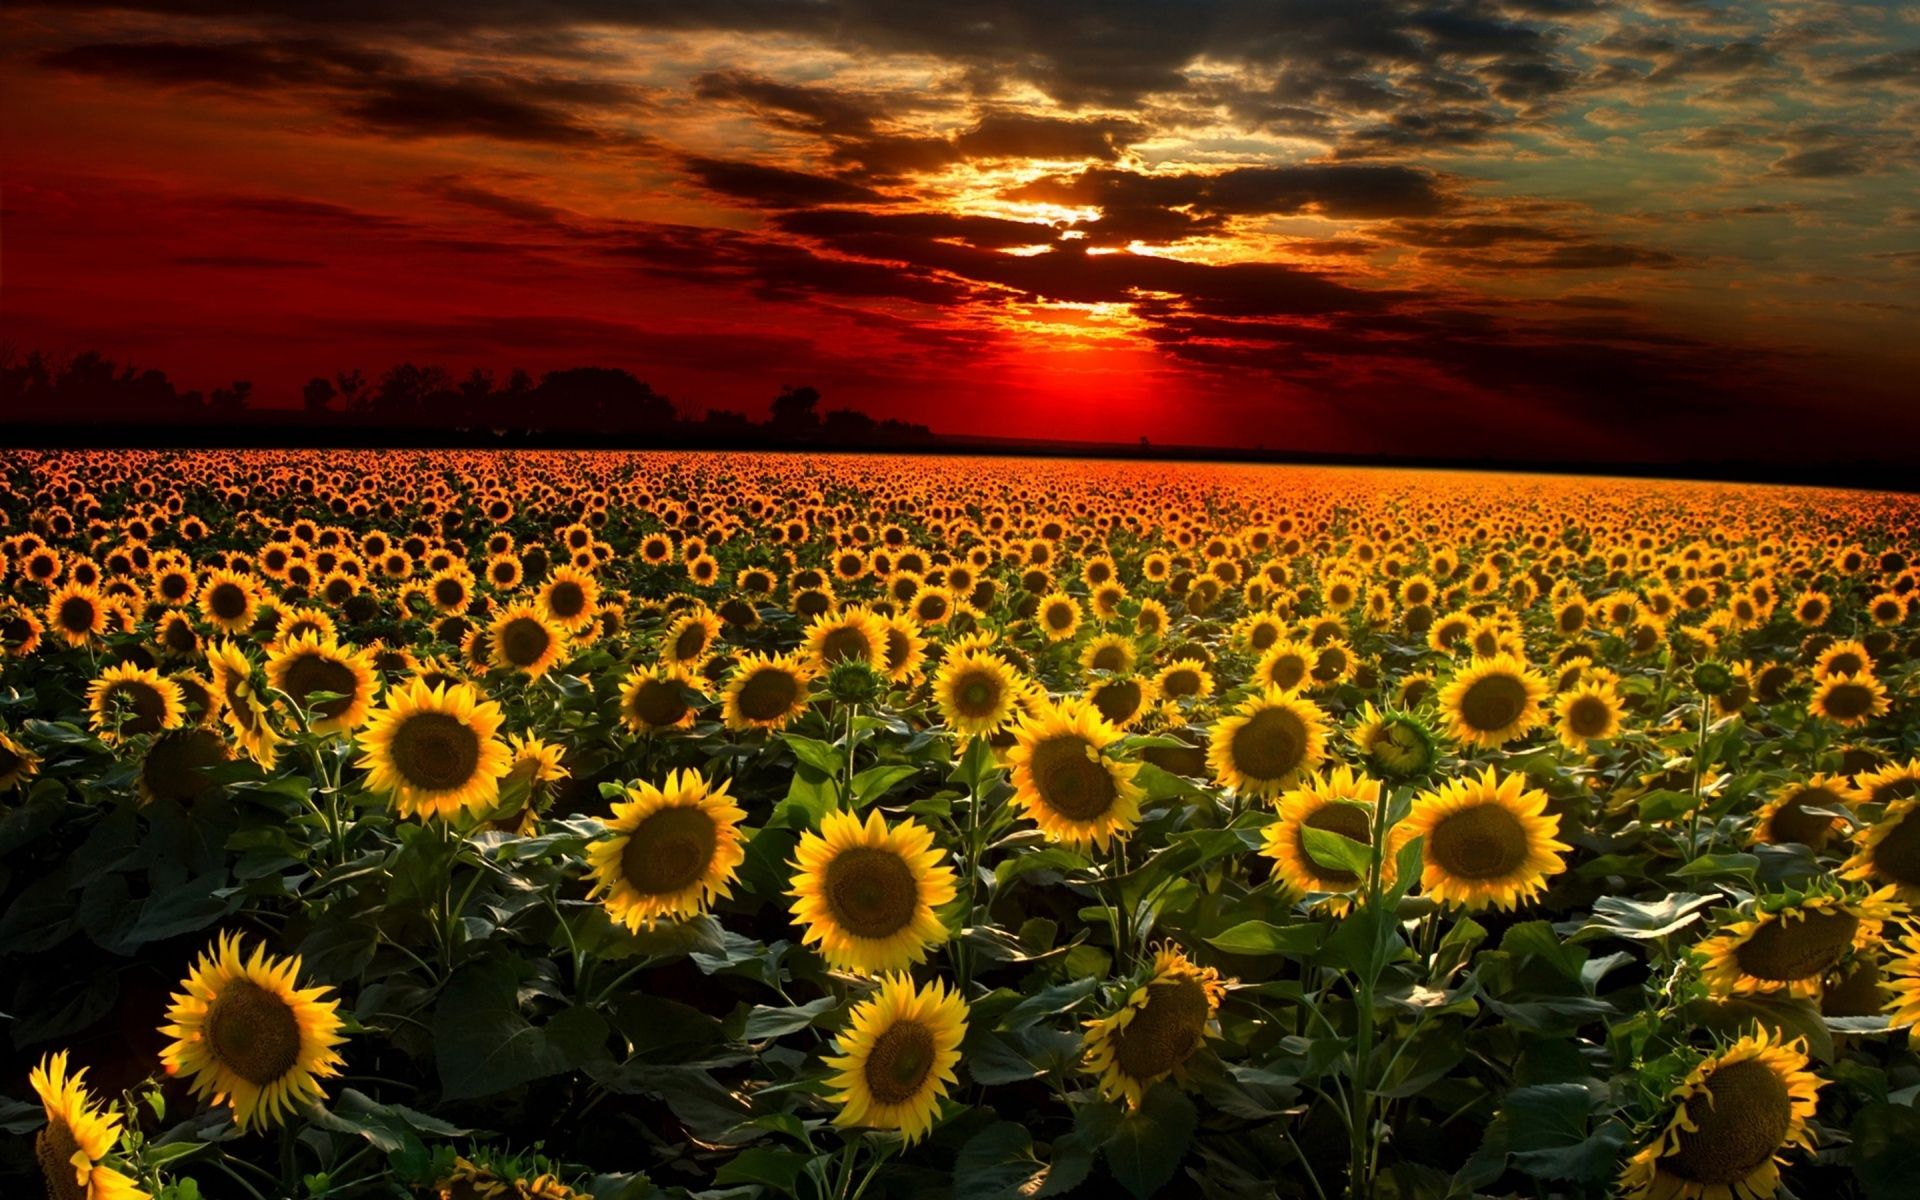 Sunflower Sunset Wallpapers Images Lugares para visitar